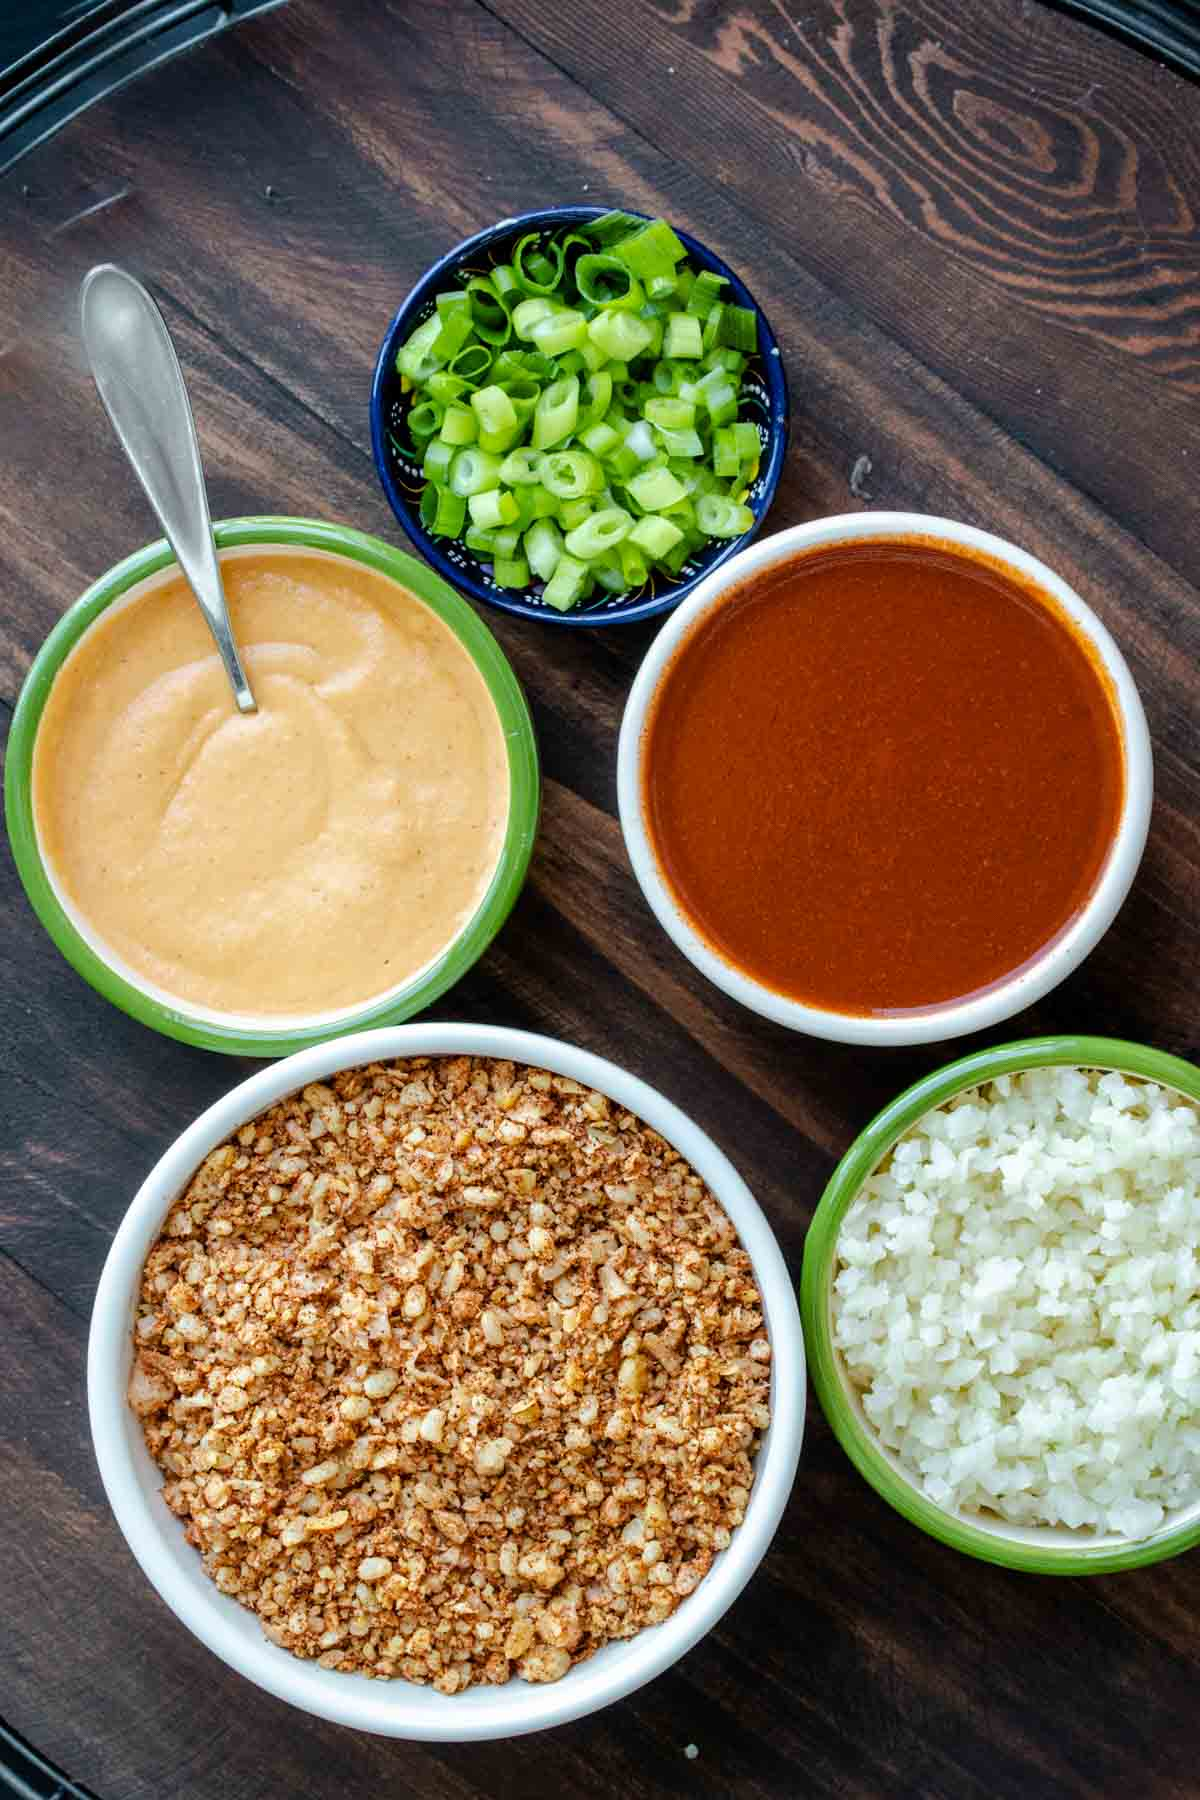 Bowls with vegan taco meat, cheese sauce, cauliflower rice, enchilada sauce and green onions